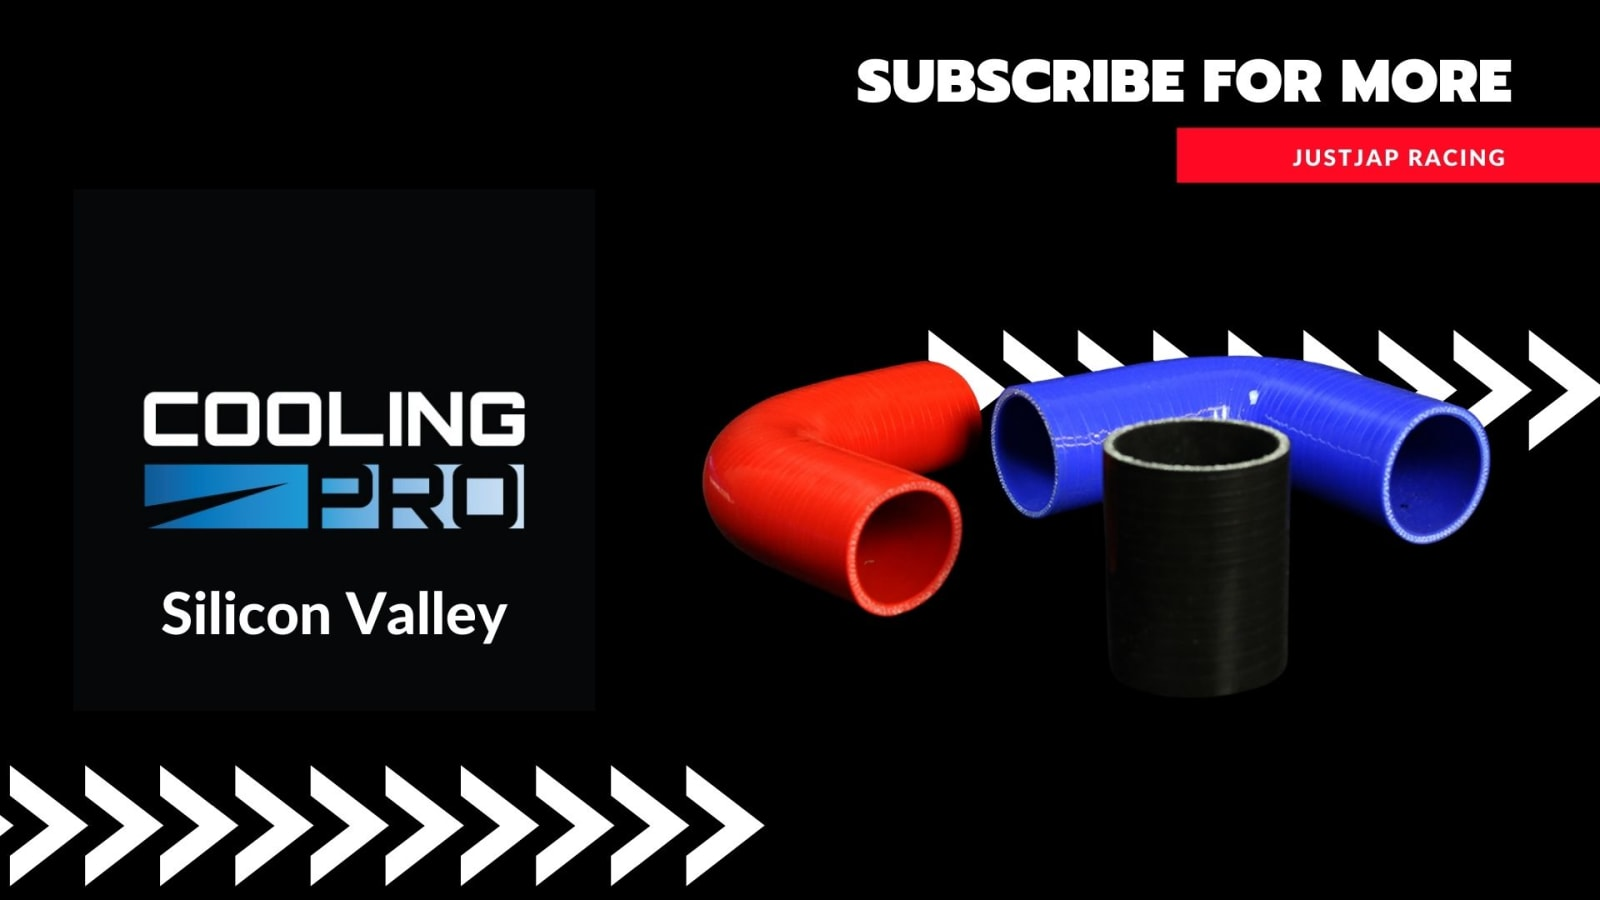 Cooling Pro Silicone 2.5 Inch / 63mm to 3 Inch / 75mm Stepped 45 Degree Bend Hose